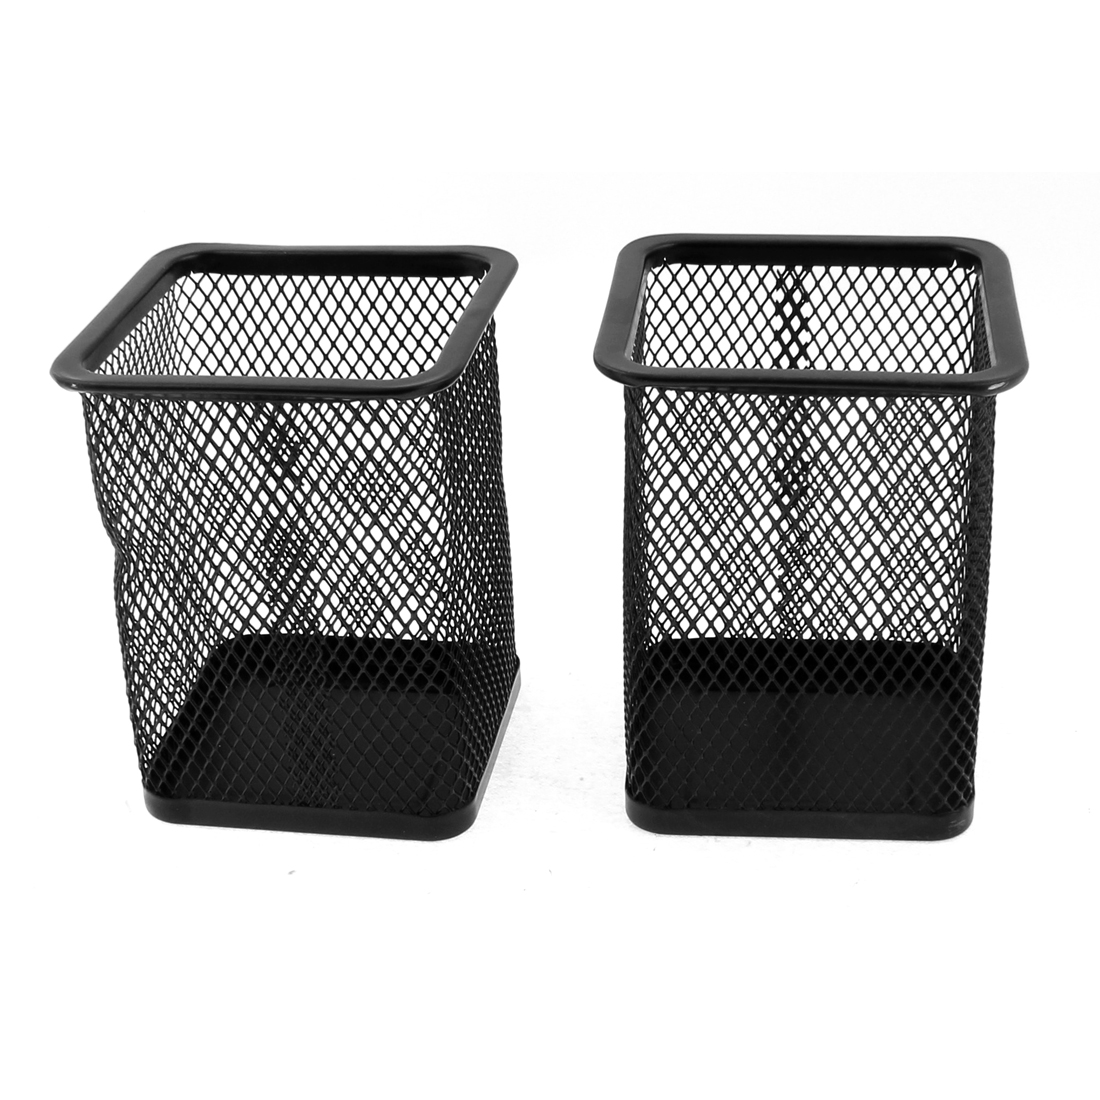 Office Desk Students Metal Mesh Pencil Pen Holder Container Black 2pcs